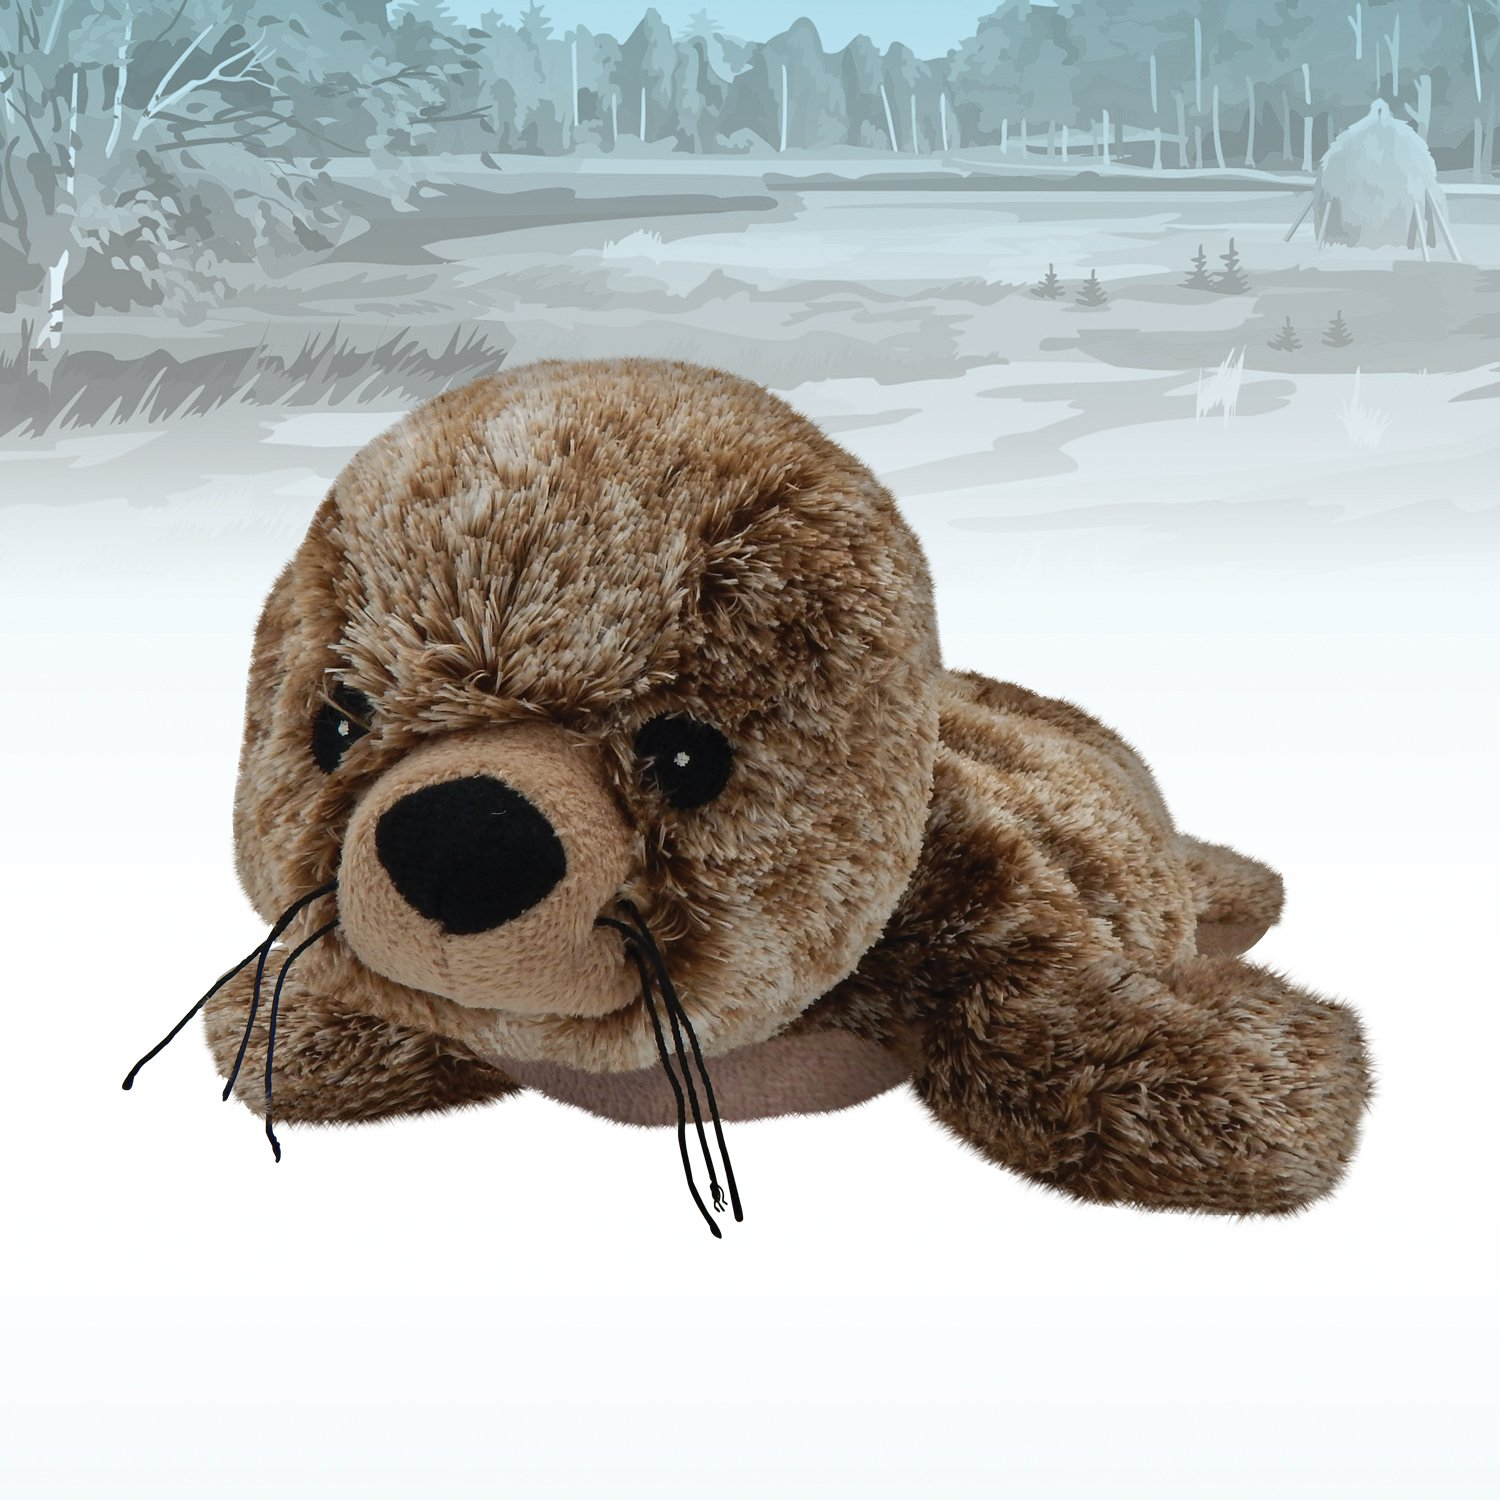 Amazon.com: T-Tex Warmies Peluche Termico Foca Estraibile: Health & Personal Care